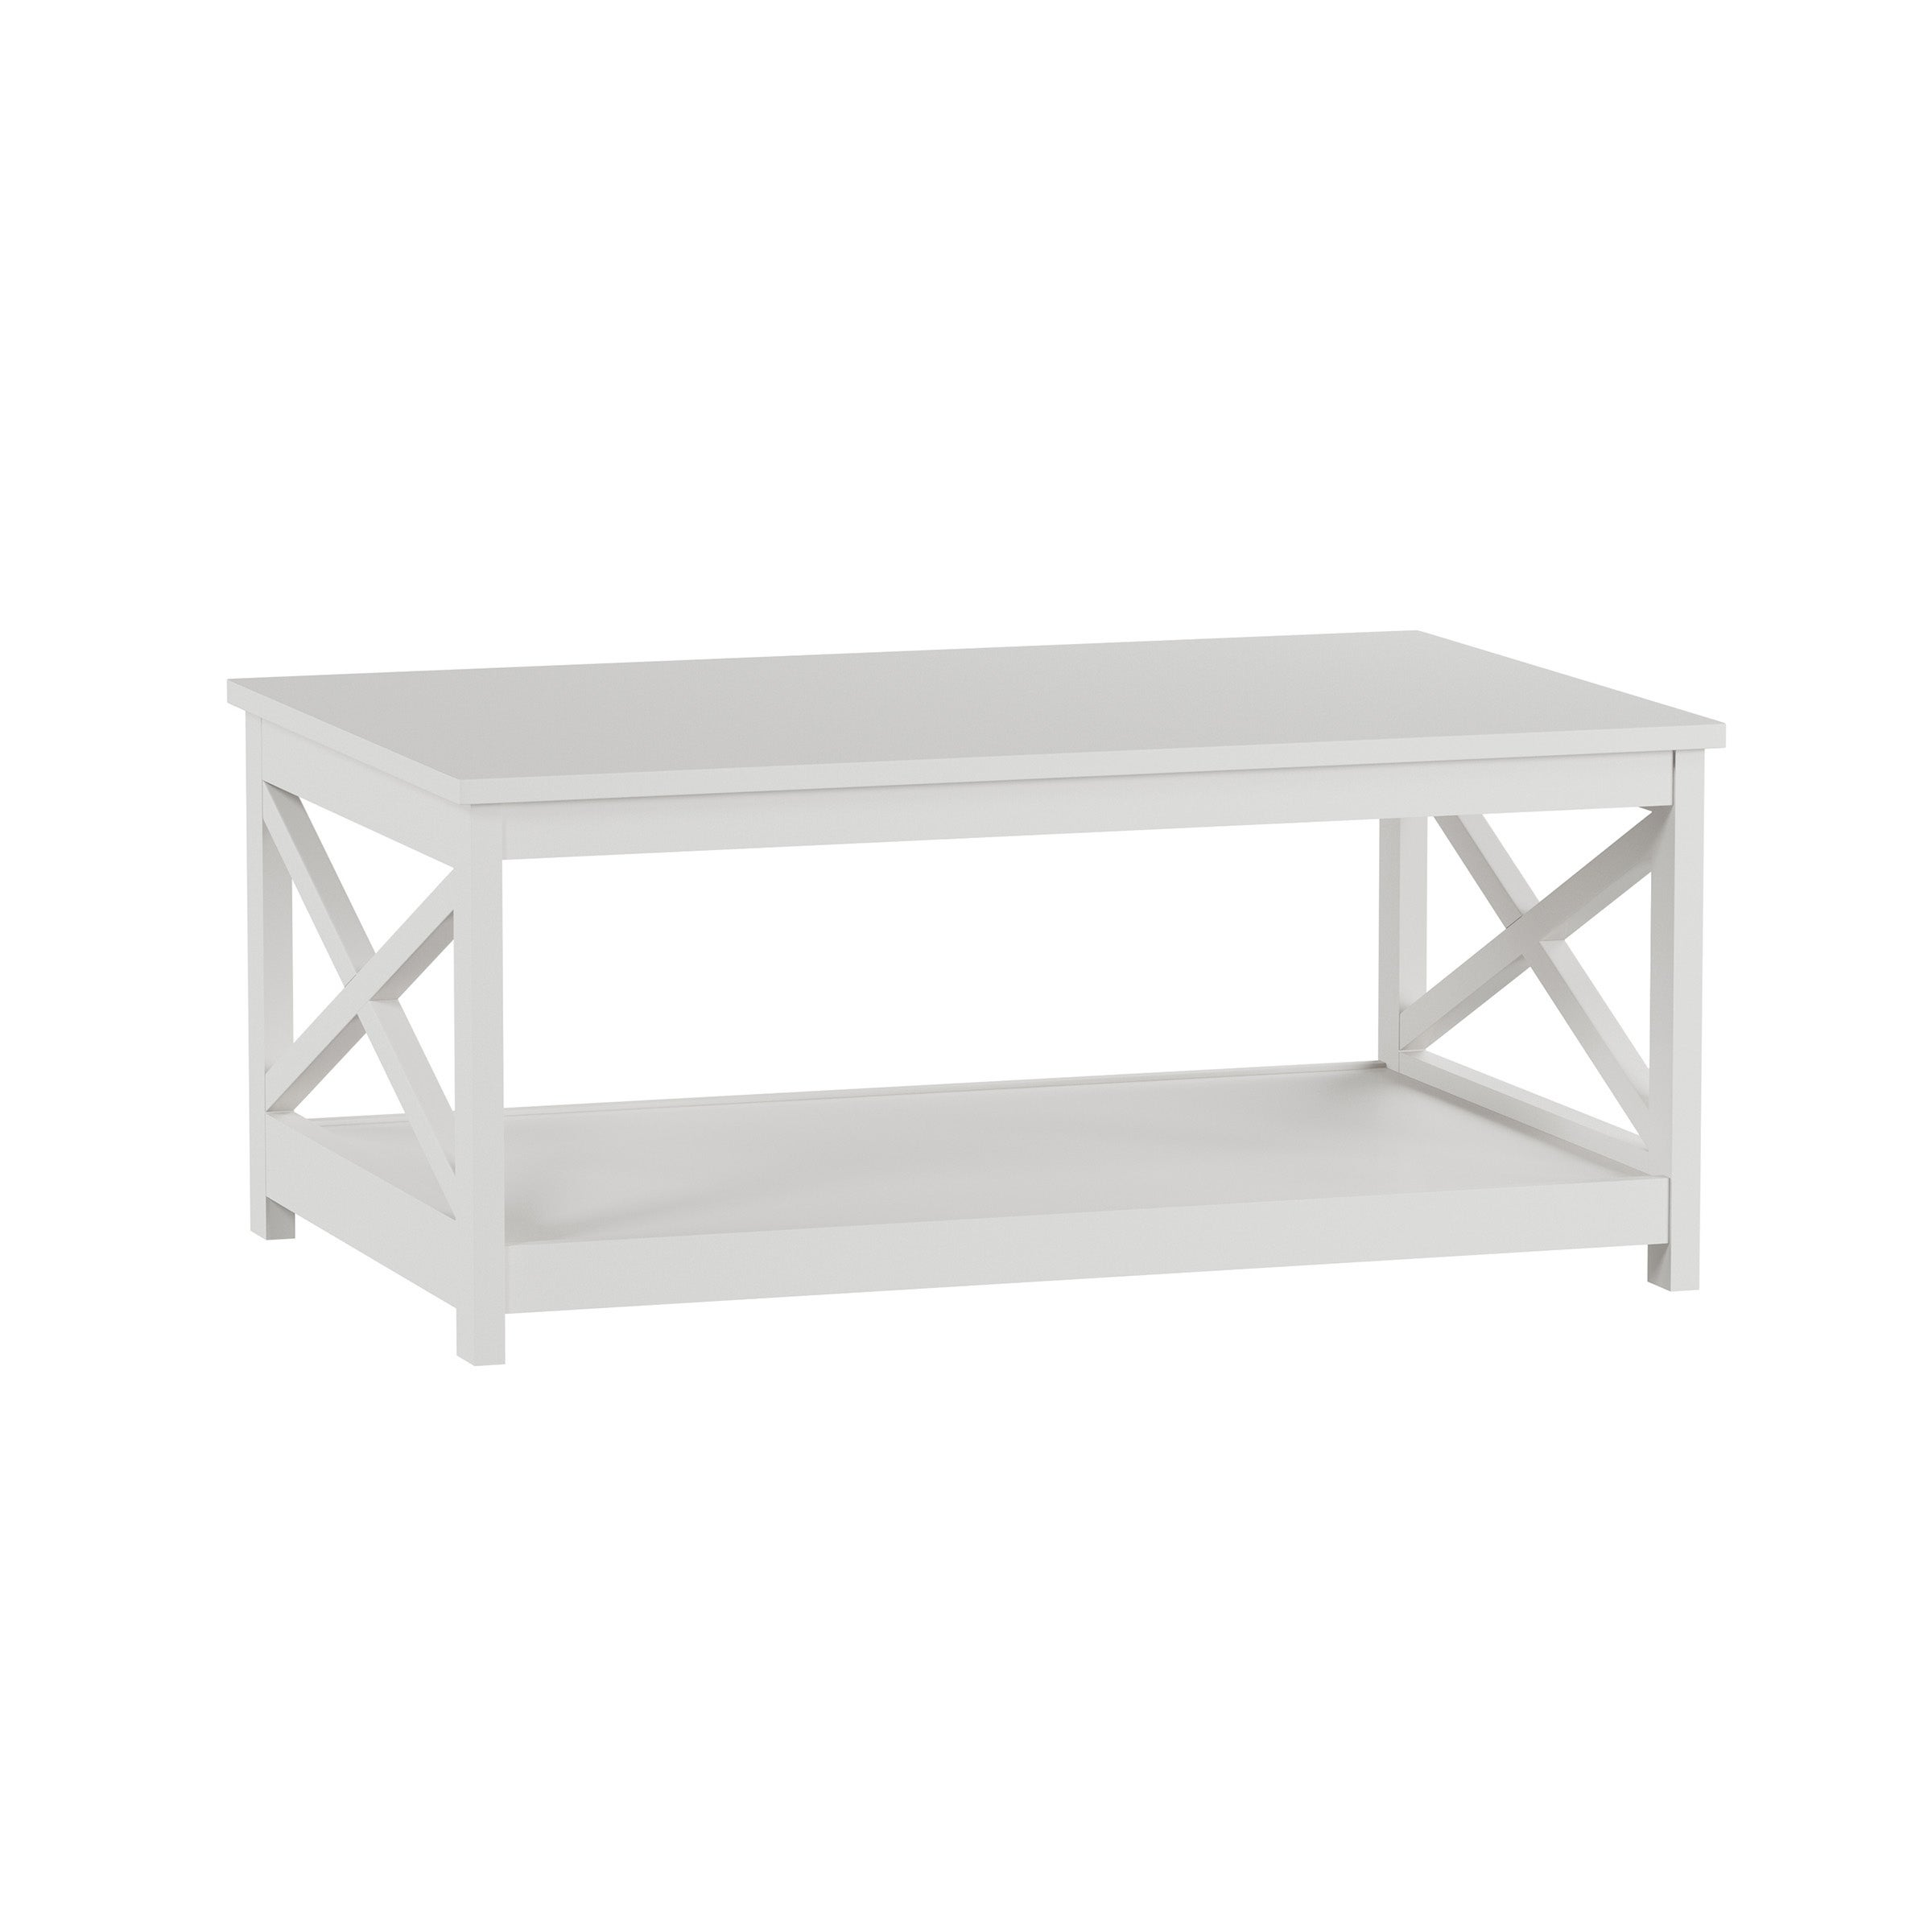 - Shop 2 Tier Low Profile Coffee Table By Lavish Home - Overstock